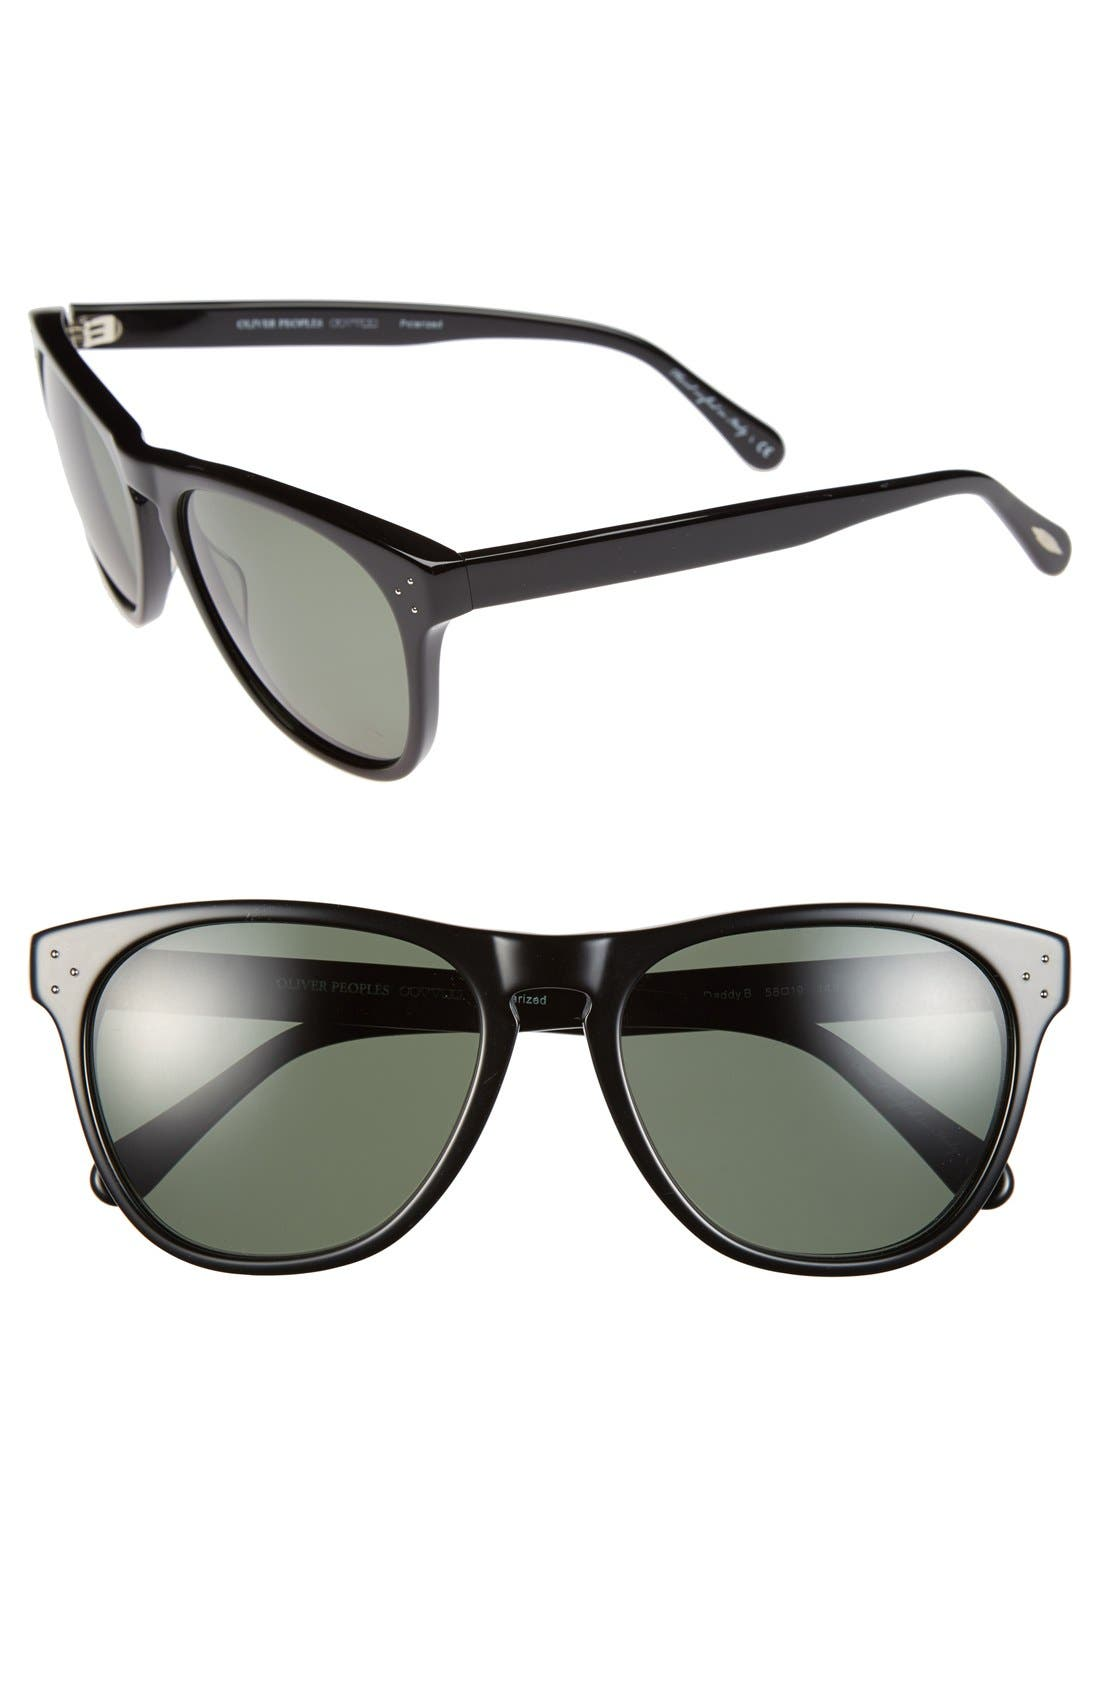 Alternate Image 1 Selected - Oliver Peoples 'Daddy B' 58mm Polarized Sunglasses